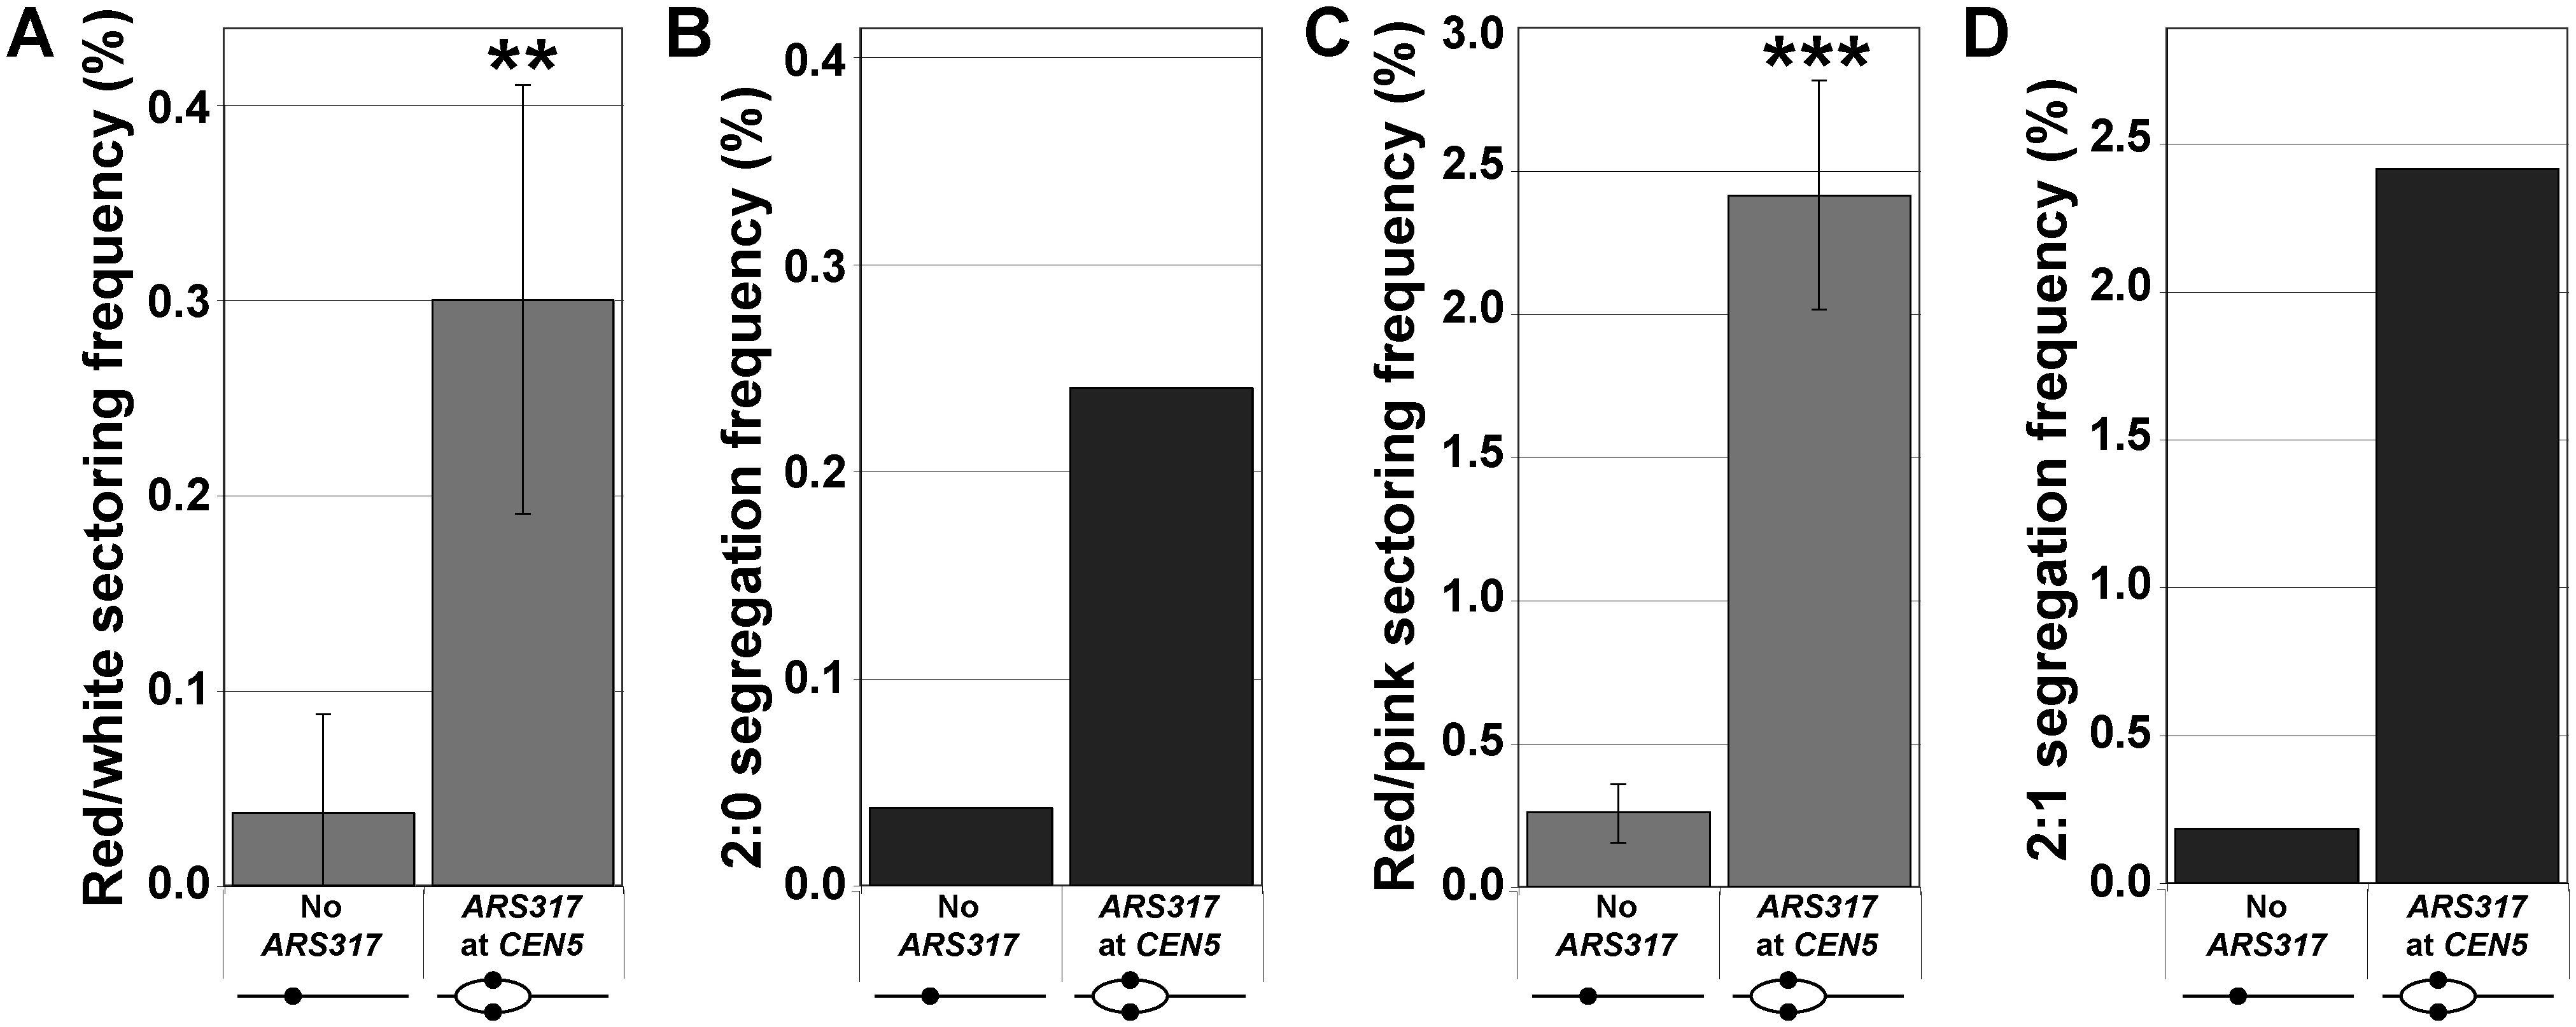 Centromeric re-replication induced in cycling cells causes 2:0 and 2:1 segregation.